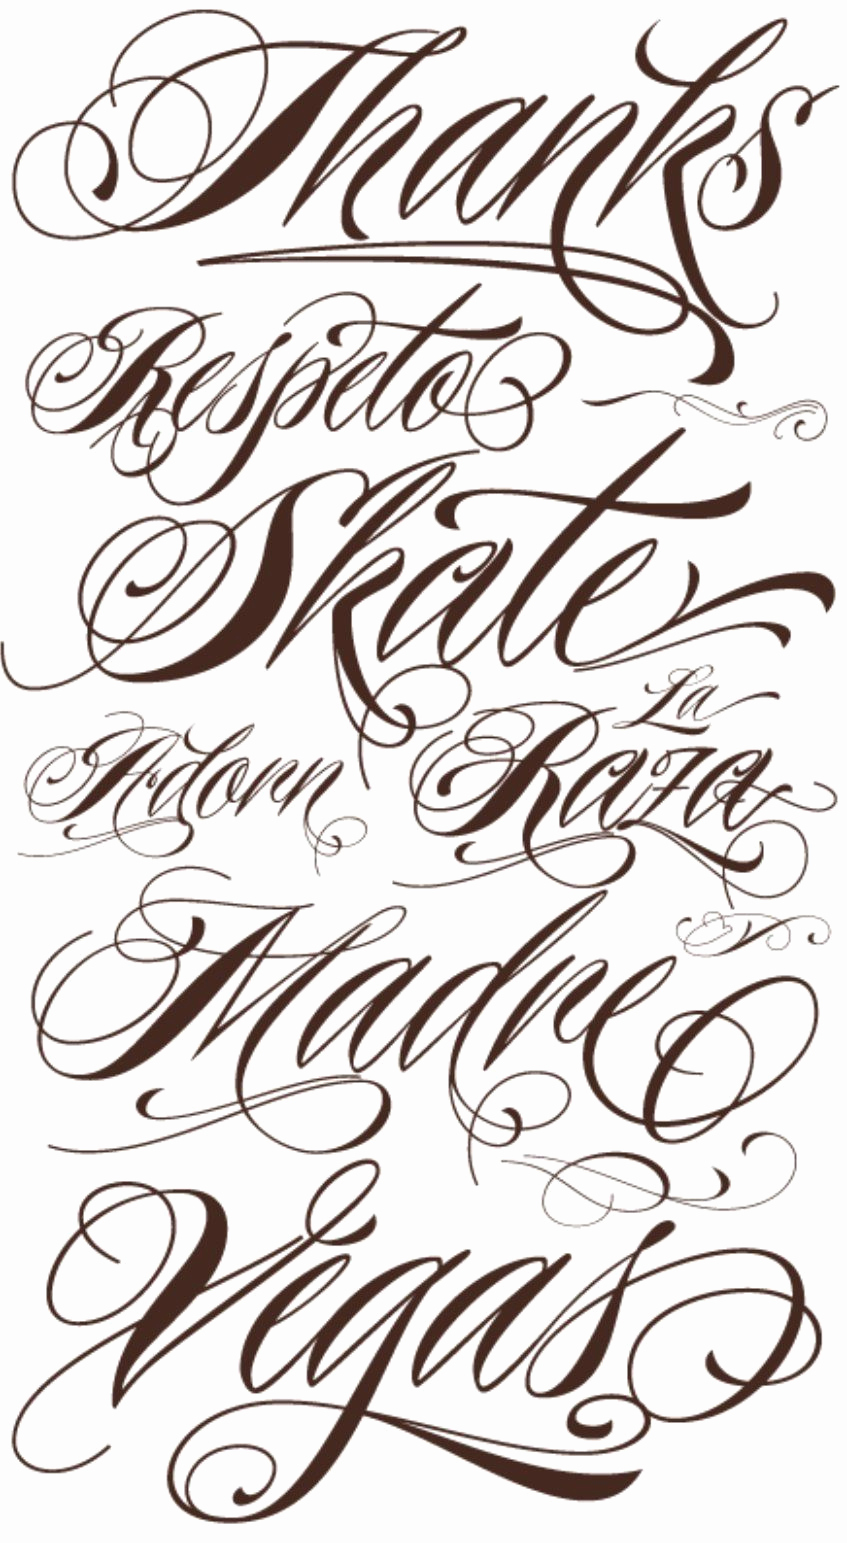 Fancy Cursive Fonts for Tattoos Beautiful Fancy Cursive Fonts Alphabet for Tattoos Fancy Cursive